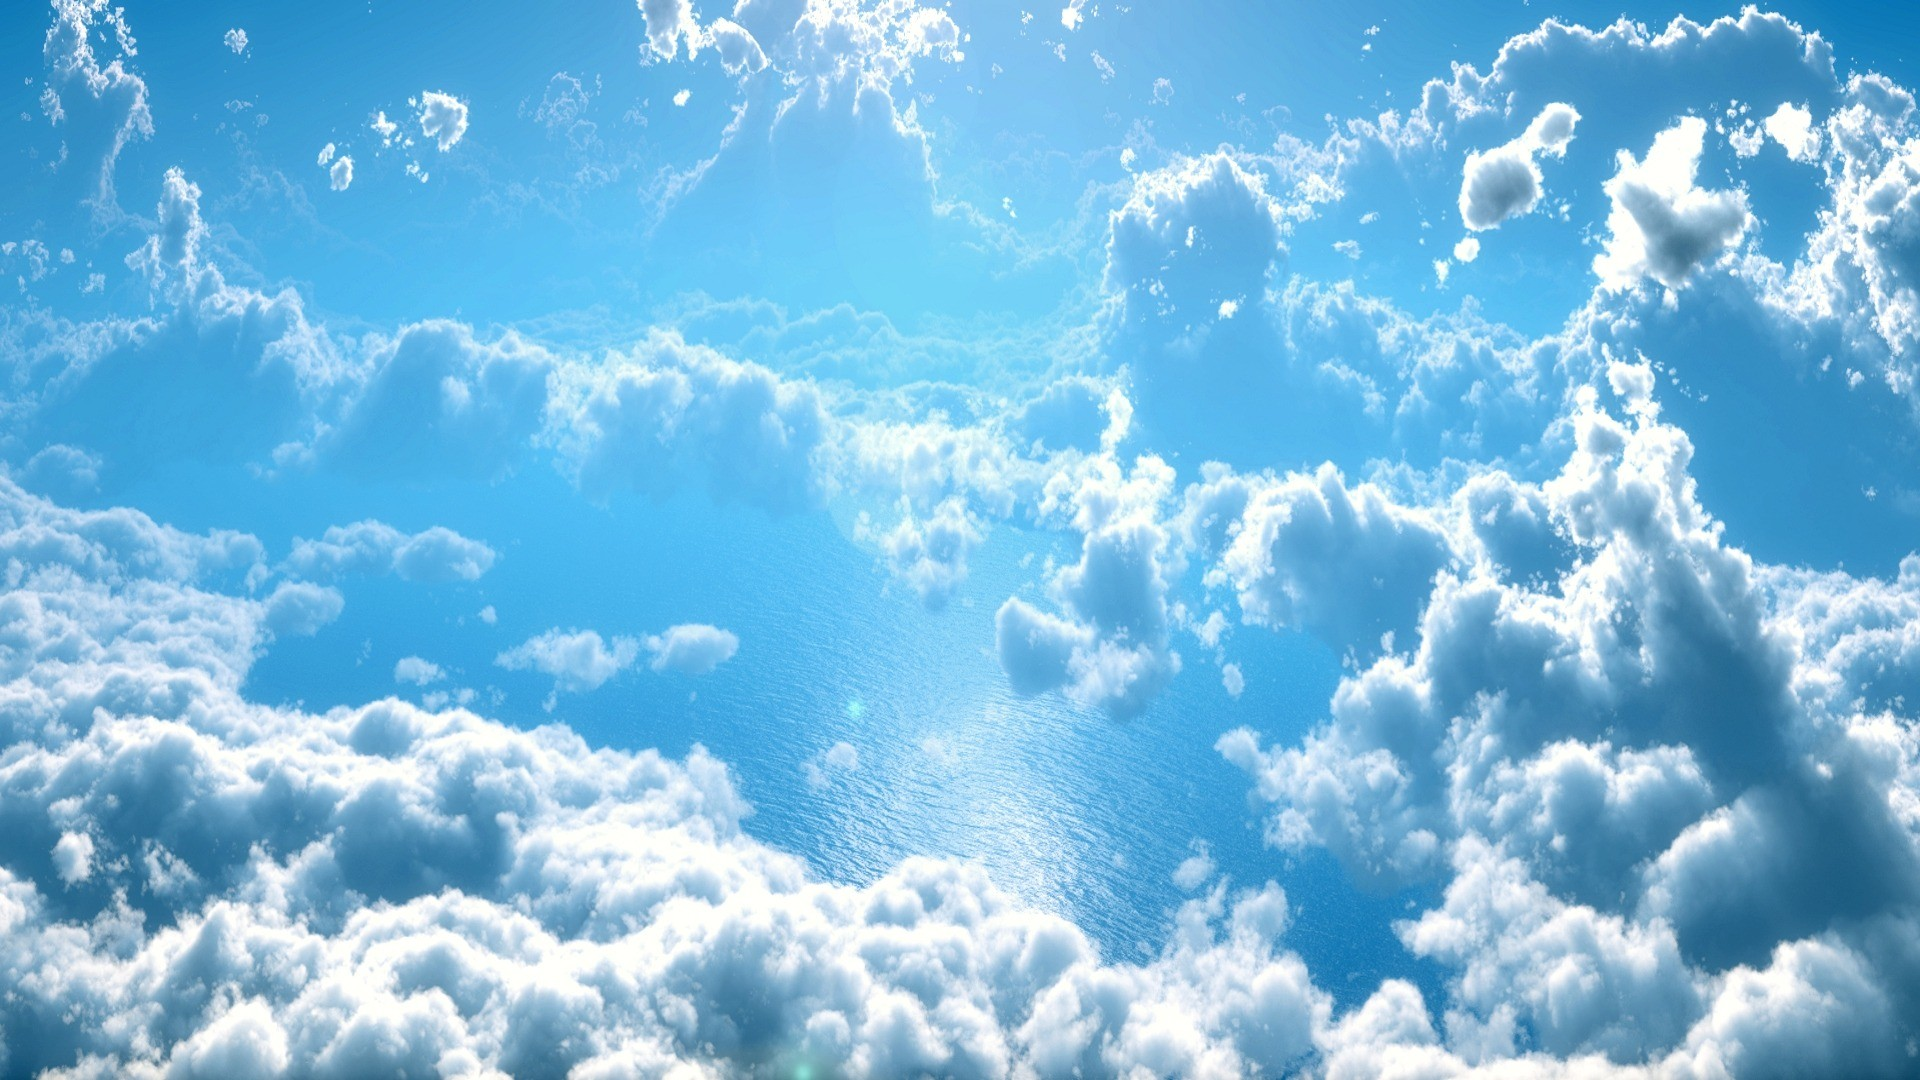 landscape water nature horizon cloud sky white sunlight atmosphere daytime  flowing scenic natural scenery cumulus blue